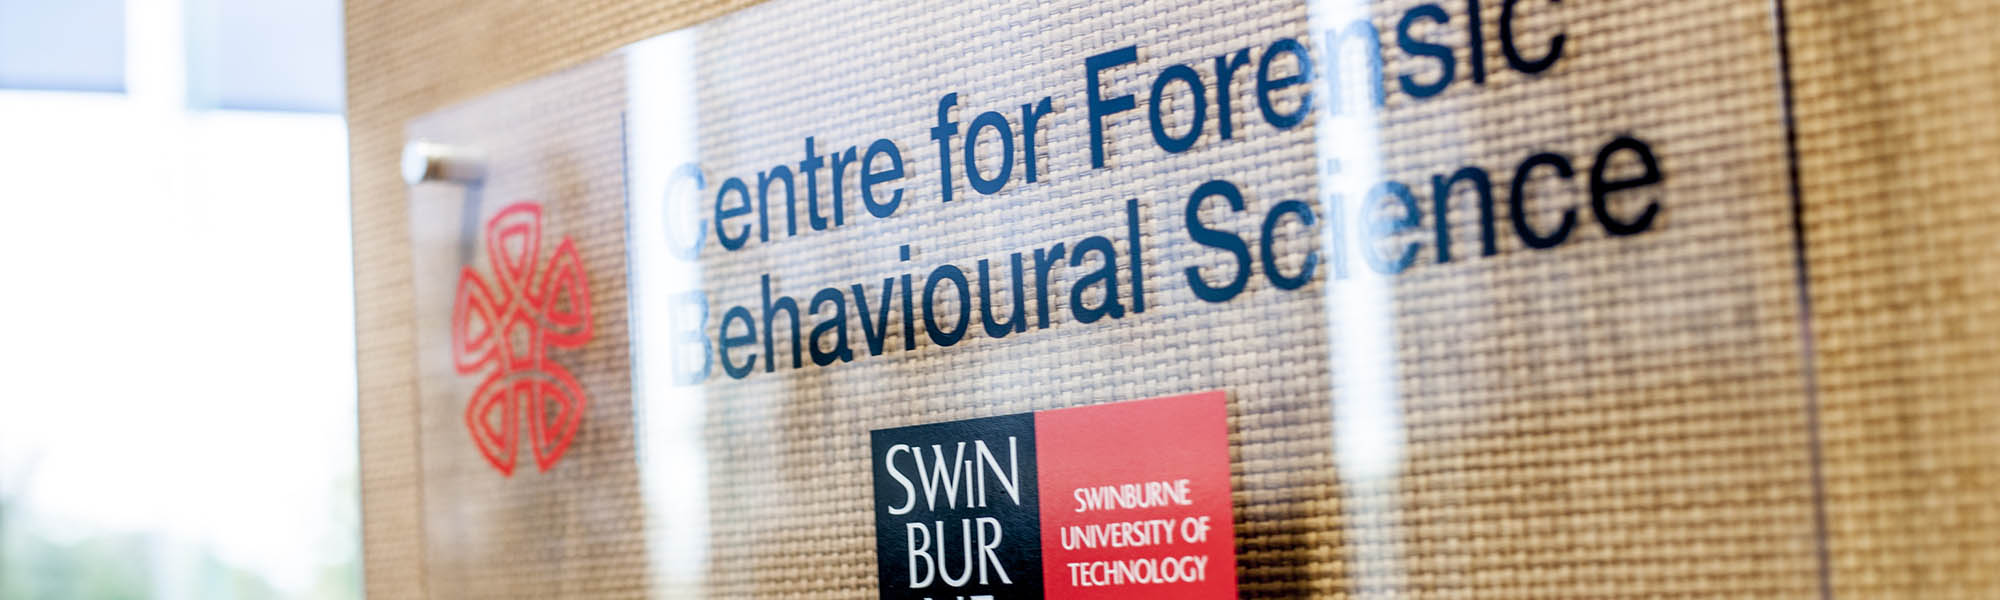 The entrance to the Centre for Forensic Behavioural Science.